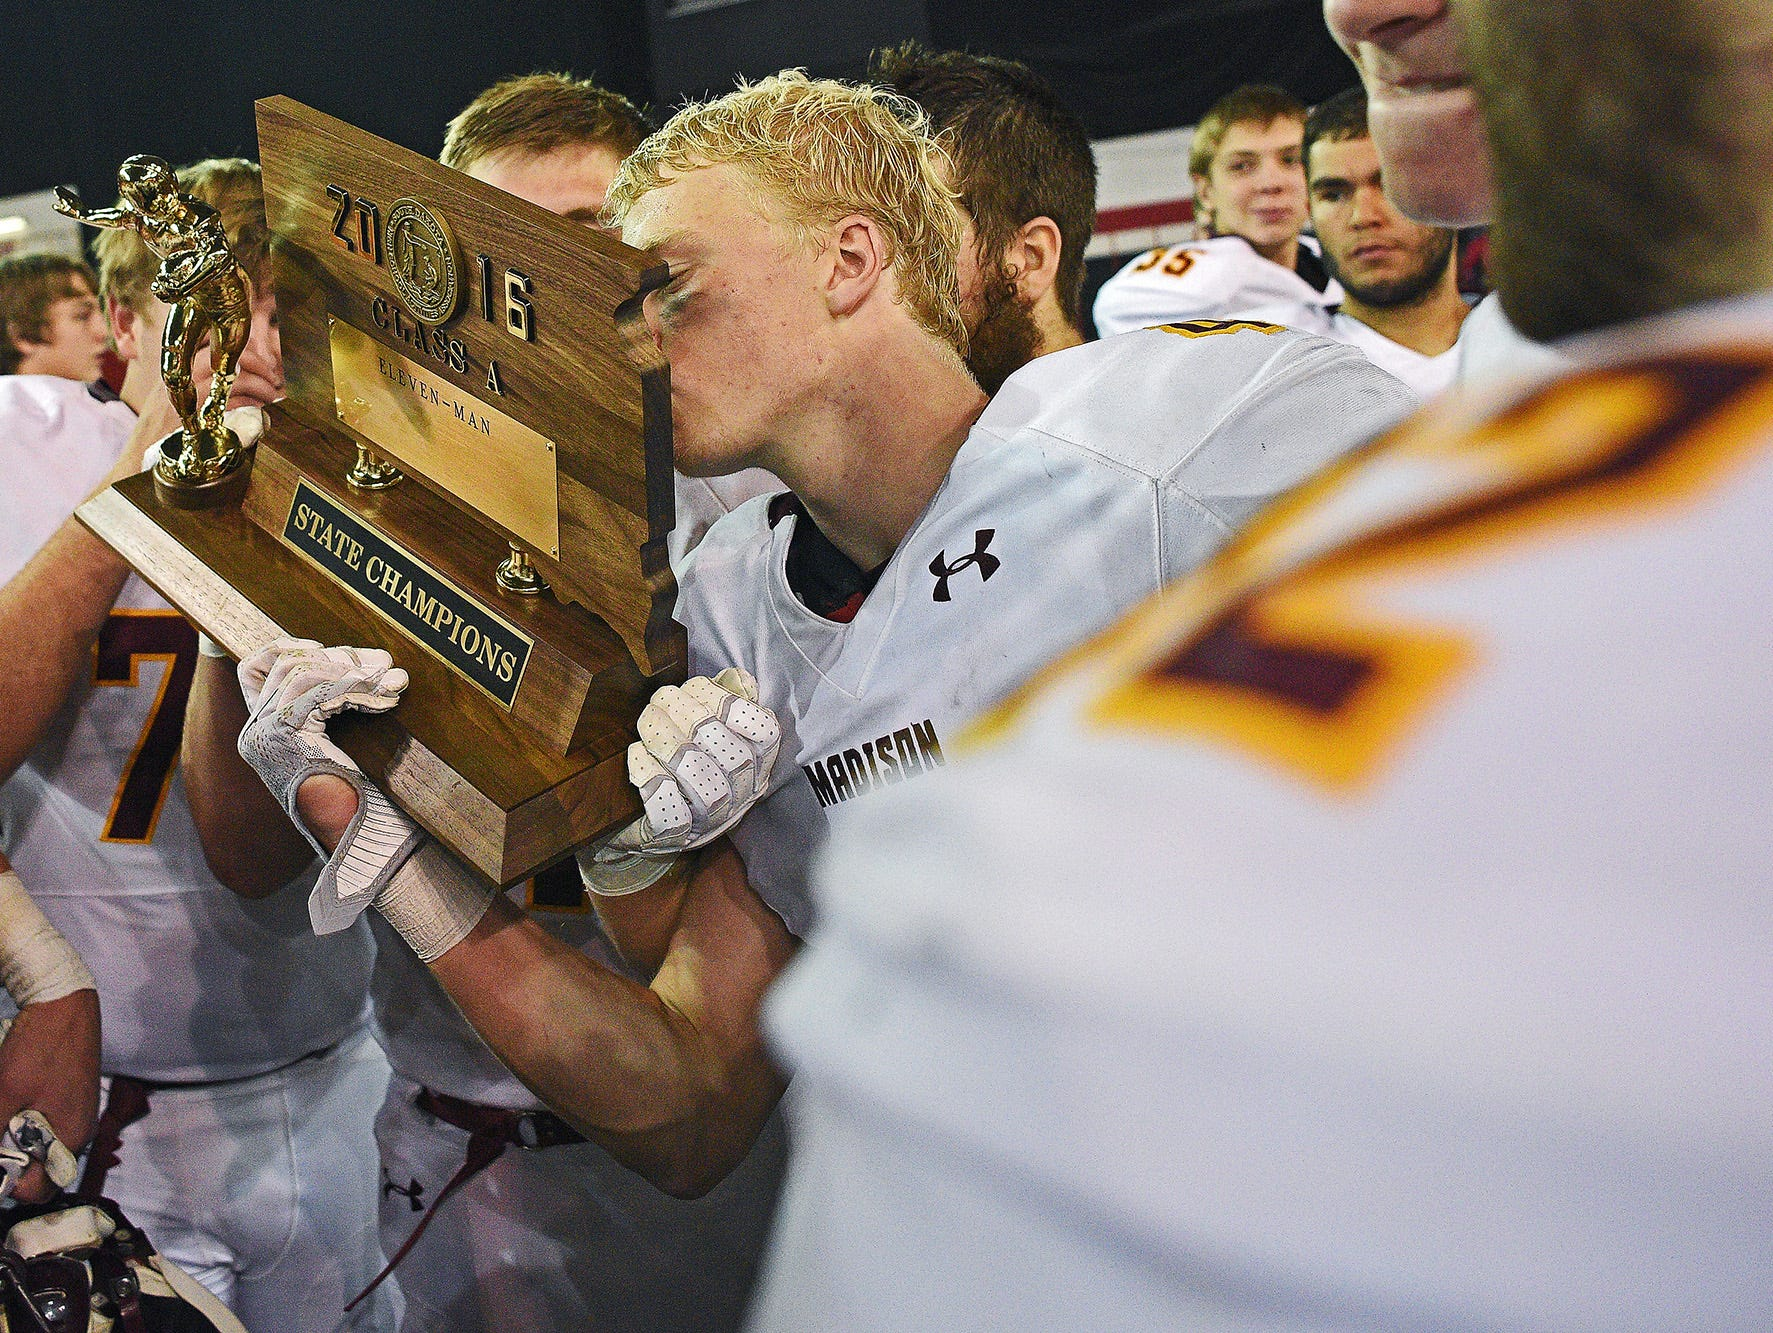 Madison's Mason Leighton (4) kisses their trophy while celebrating their 39-0 win over Tea Area with their fans and families after the 2016 South Dakota State Class 11A Football Championship game Saturday, Nov. 12, 2016, at the DakotaDome on the University of South Dakota campus in Vermillion, S.D.